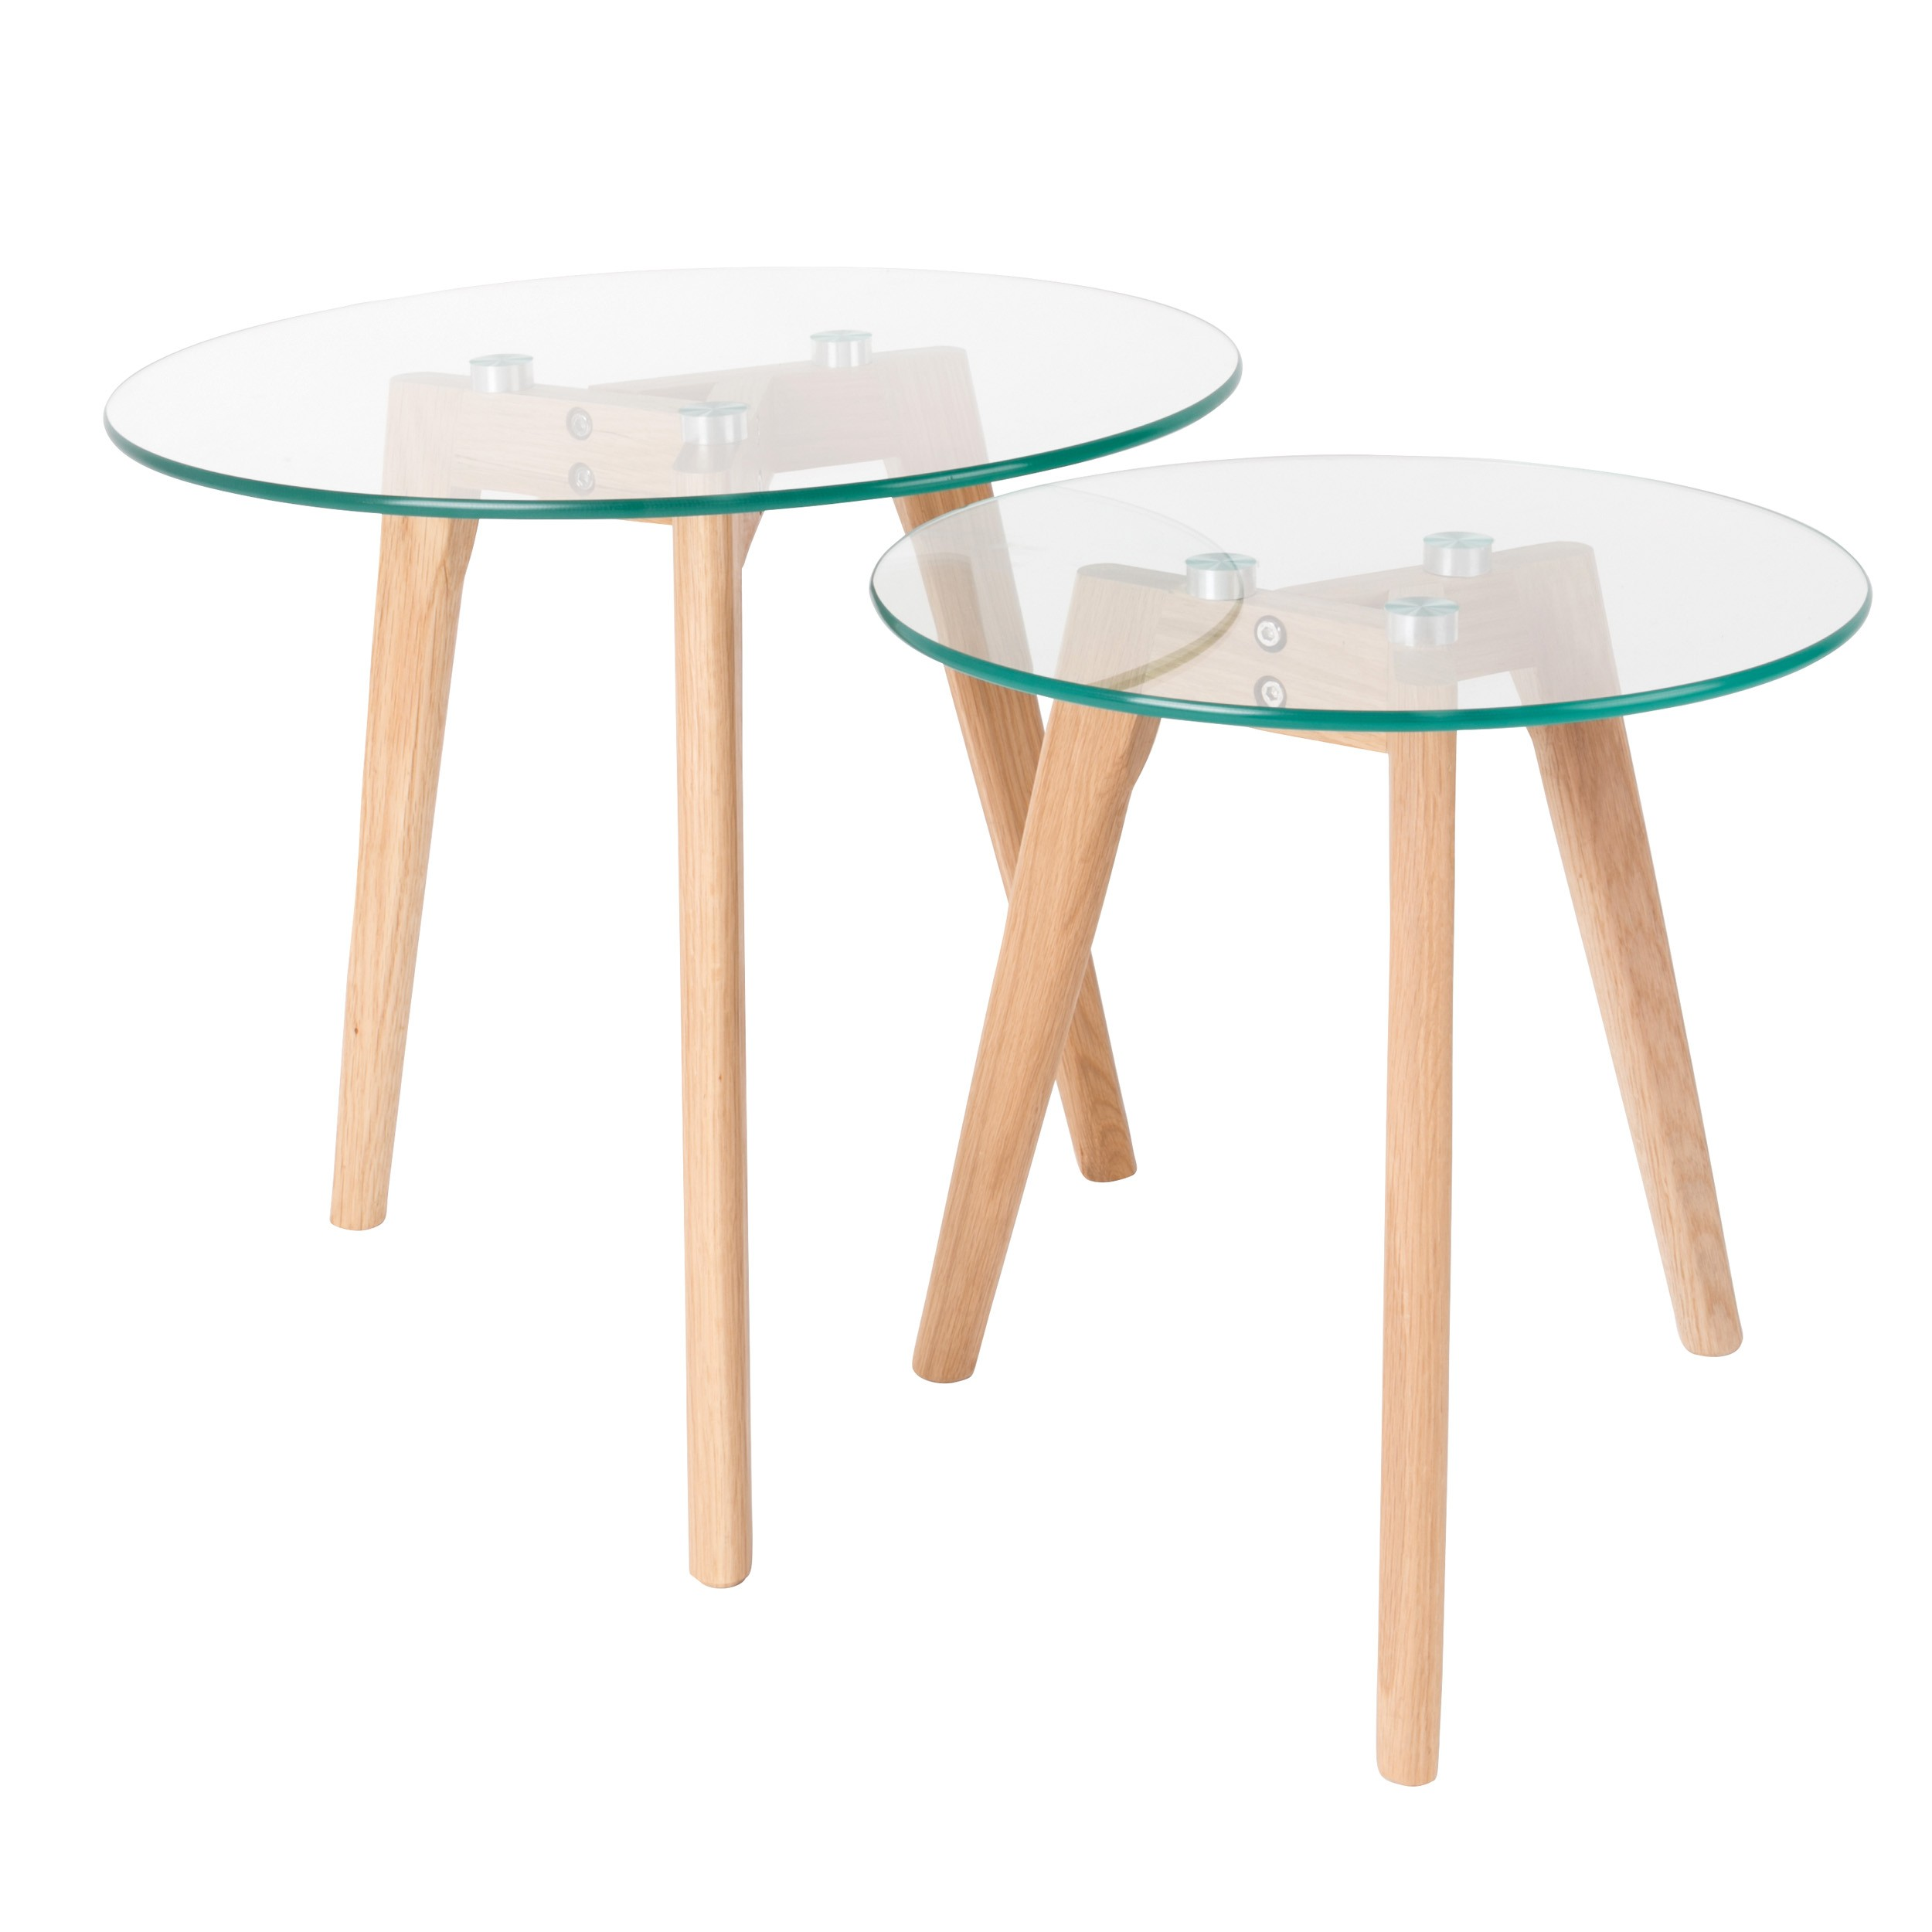 Table Ronde Salon De Jardin Unique Table Basse Ronde Bror Lot De 2 Of 40 Best Of Table Ronde Salon De Jardin